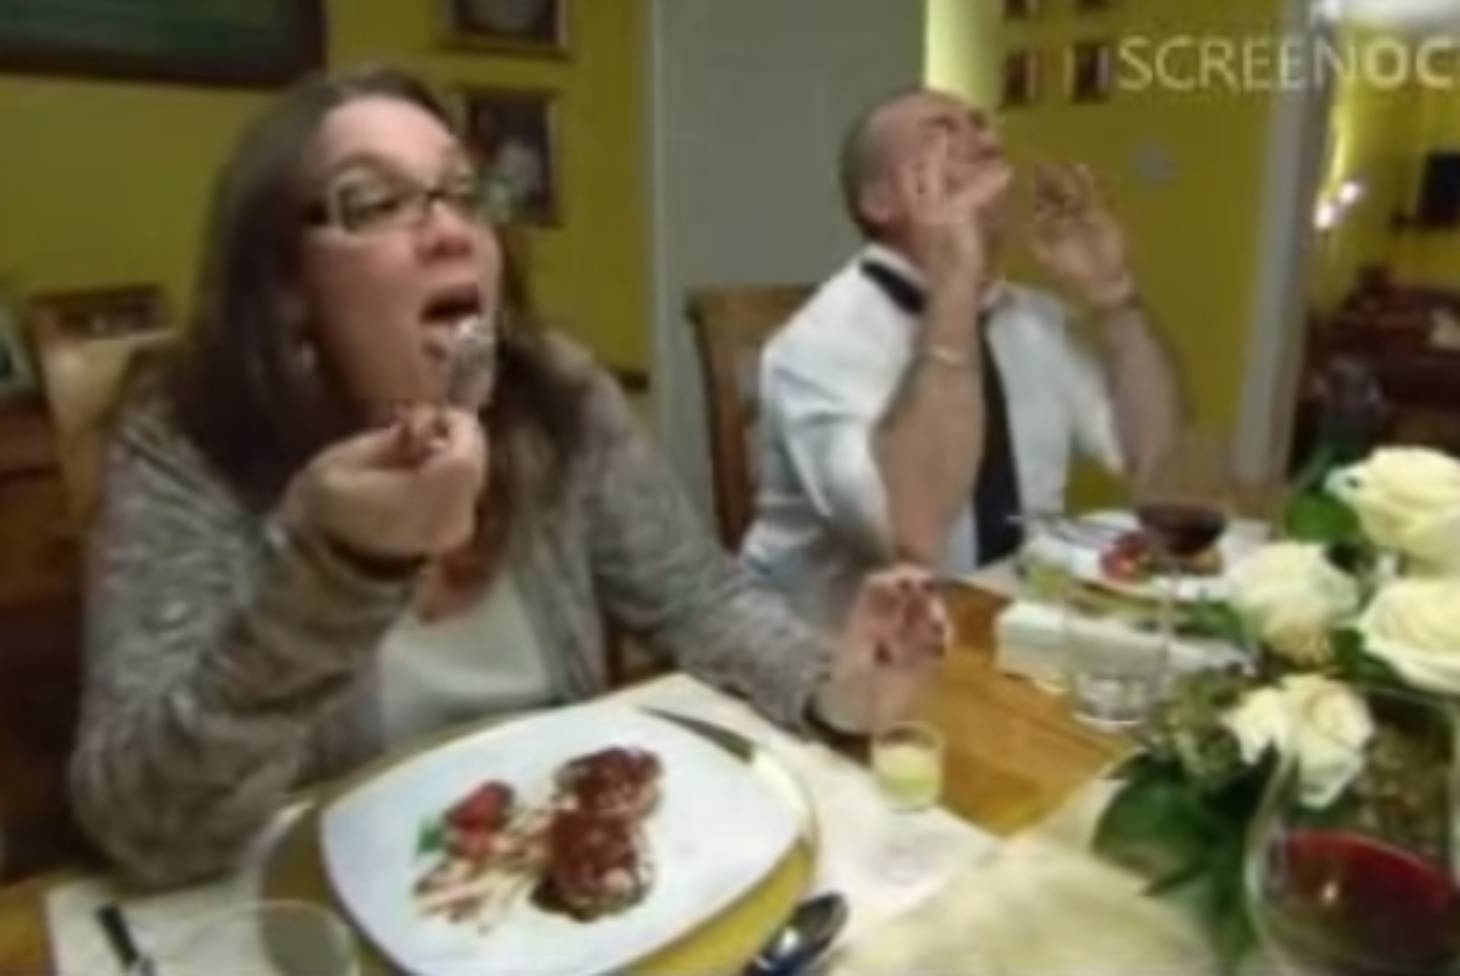 Four cringe moments from Come Dine With Me   Stuff.co.nz